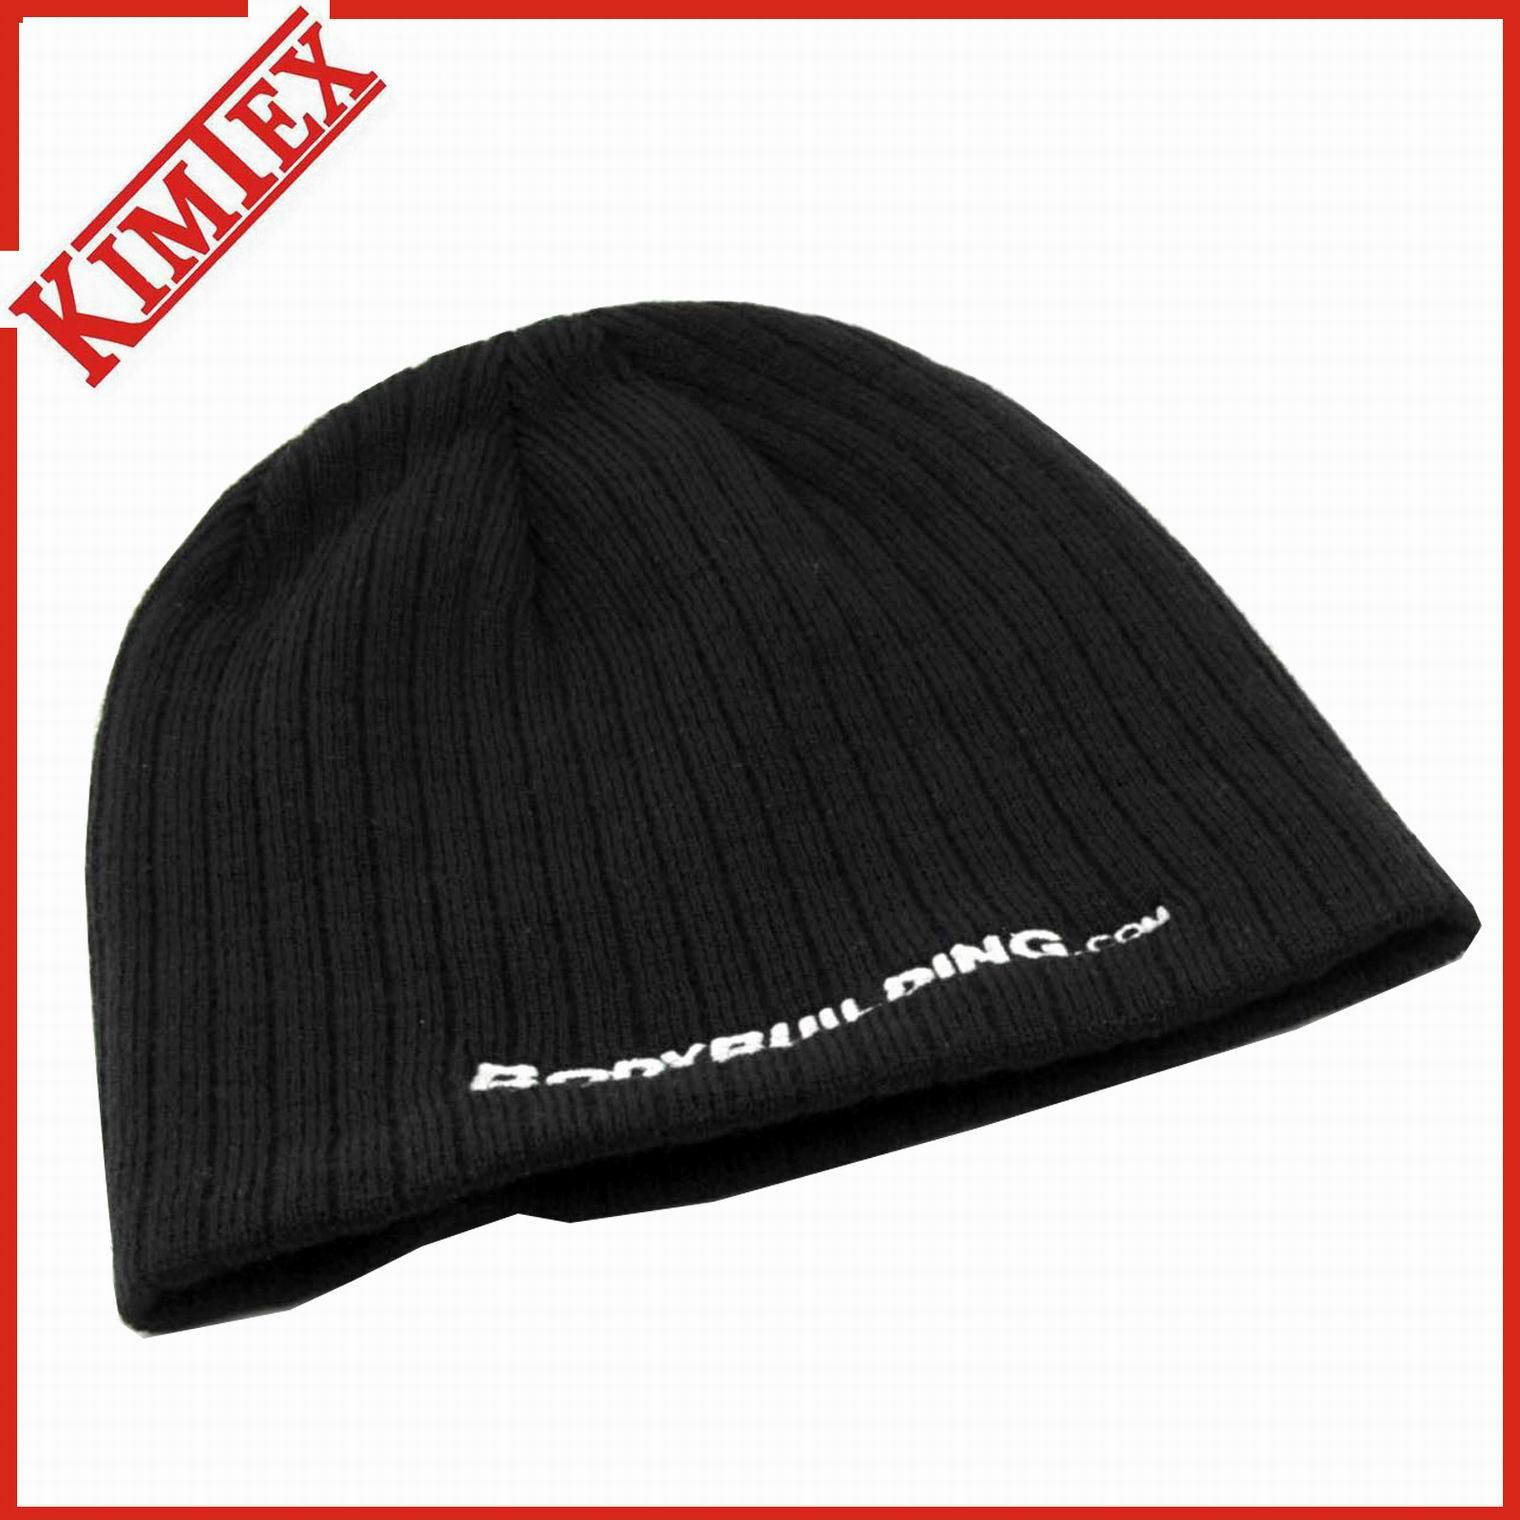 100% Acrylic Knitted Embroidery Promotion Skull Cap